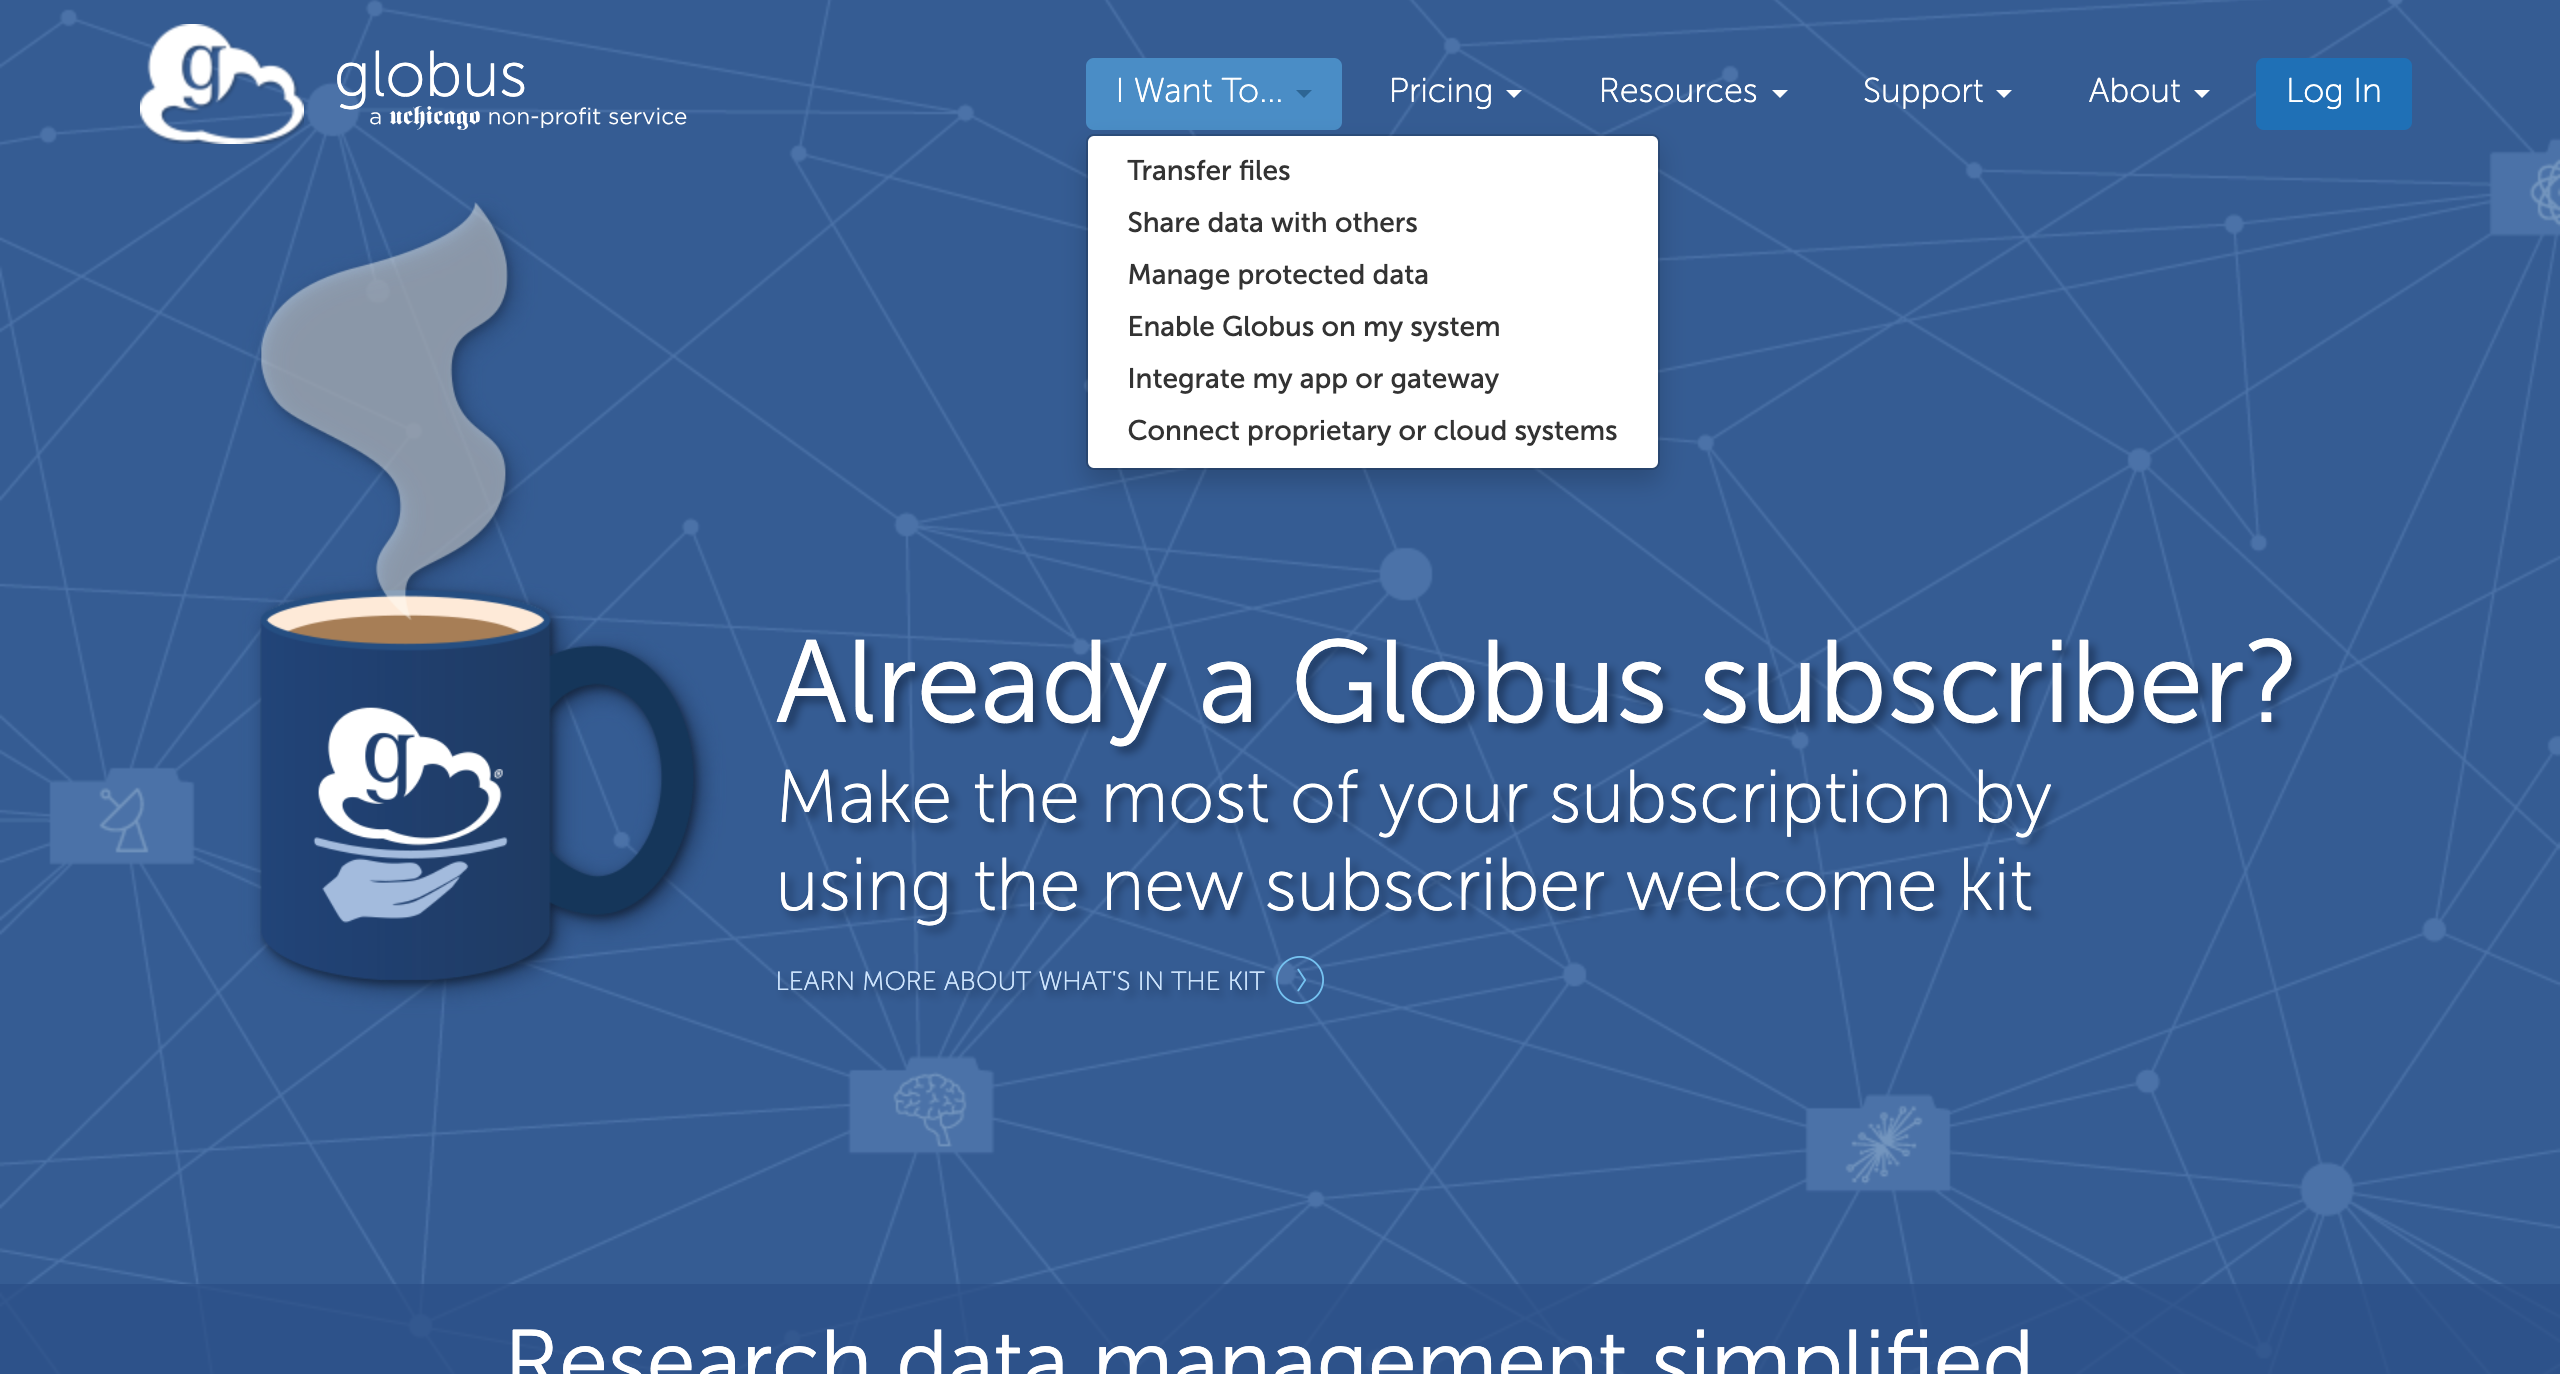 getting_started/images/globus-home-page.png